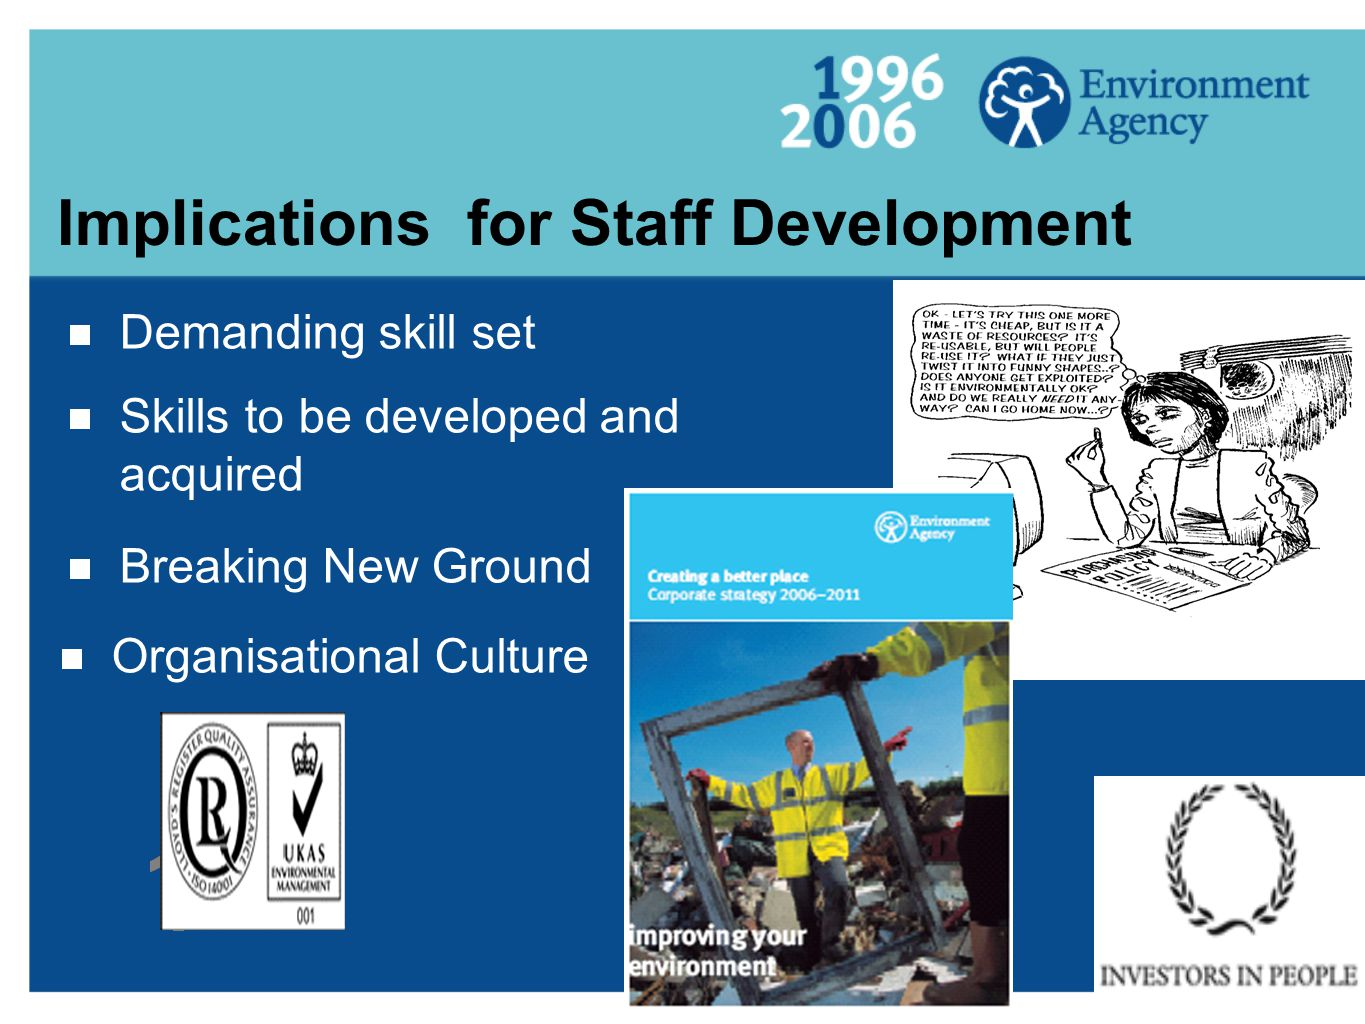  Demanding skill set Implications for Staff Development  Skills to be developed and acquired  Breaking New Ground  Organisational Culture